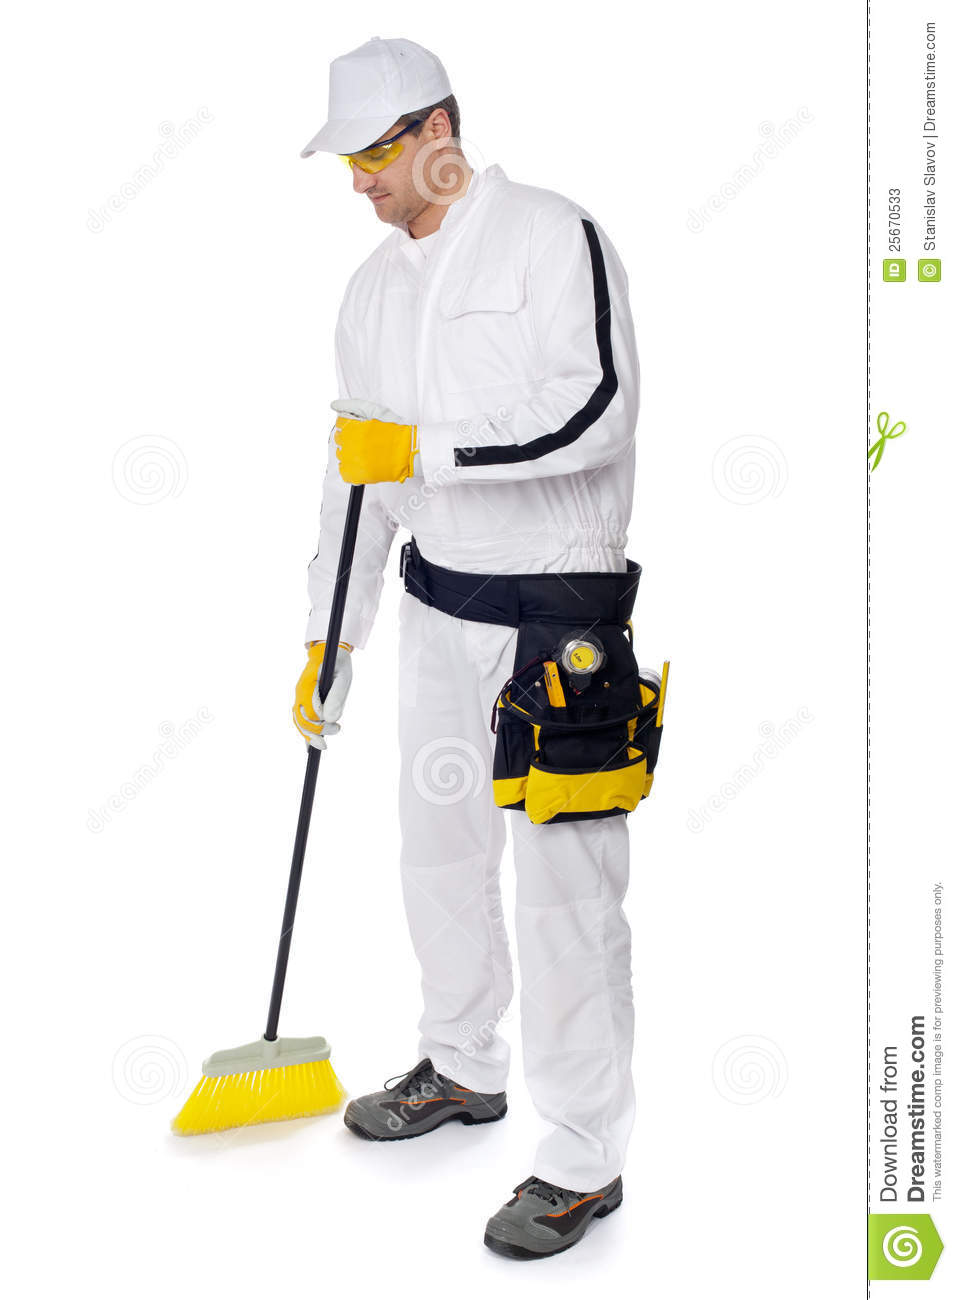 Construction Worker In White Overalls Sweeping Cleaning Hygiene With A